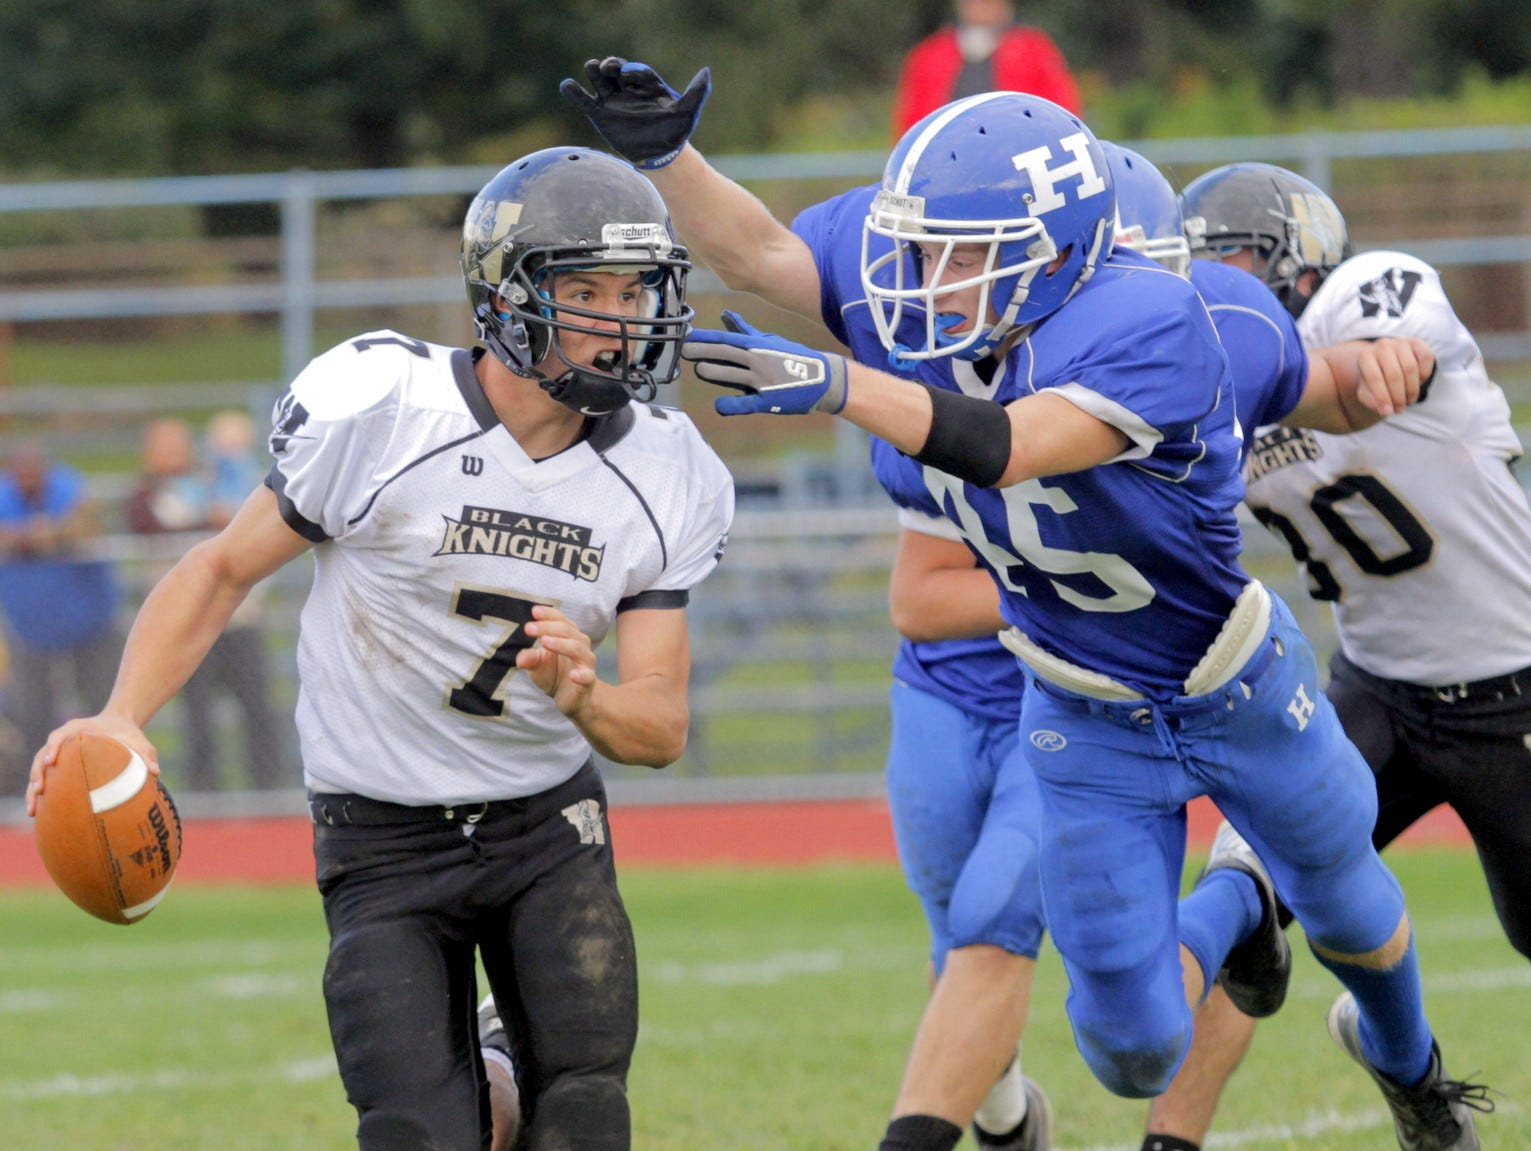 From 2012: Windsor quarterback Josh Cady tries to avoid a lunging Konnor Kremmer in the fourth quarter of Horseheads' 43-19 victory Saturday.